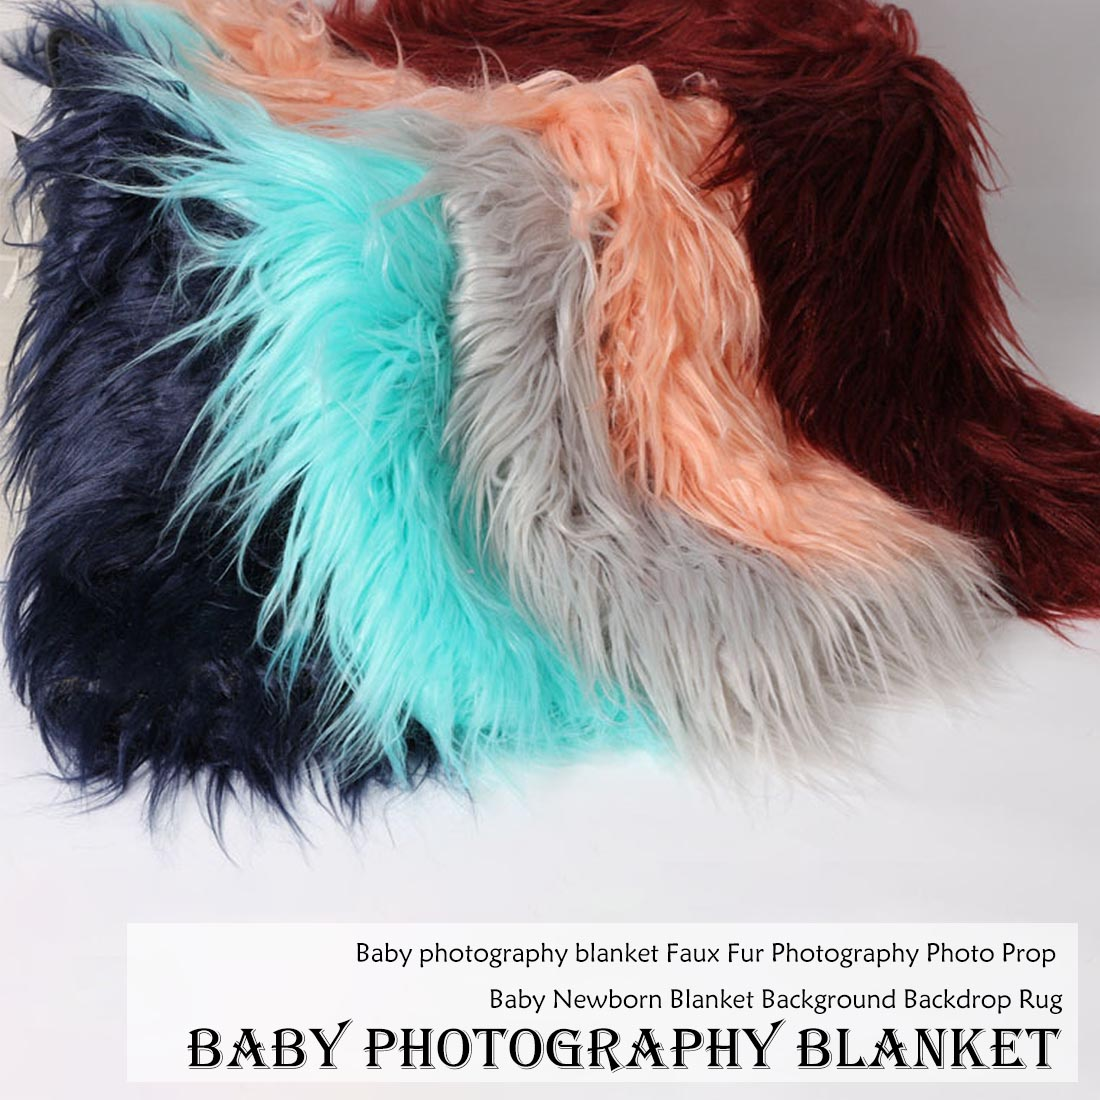 Curly Faux Fur Blanket For Baby Photography Props Basket Cushion Filler Baby Photography Shoot Blanket Photo Props